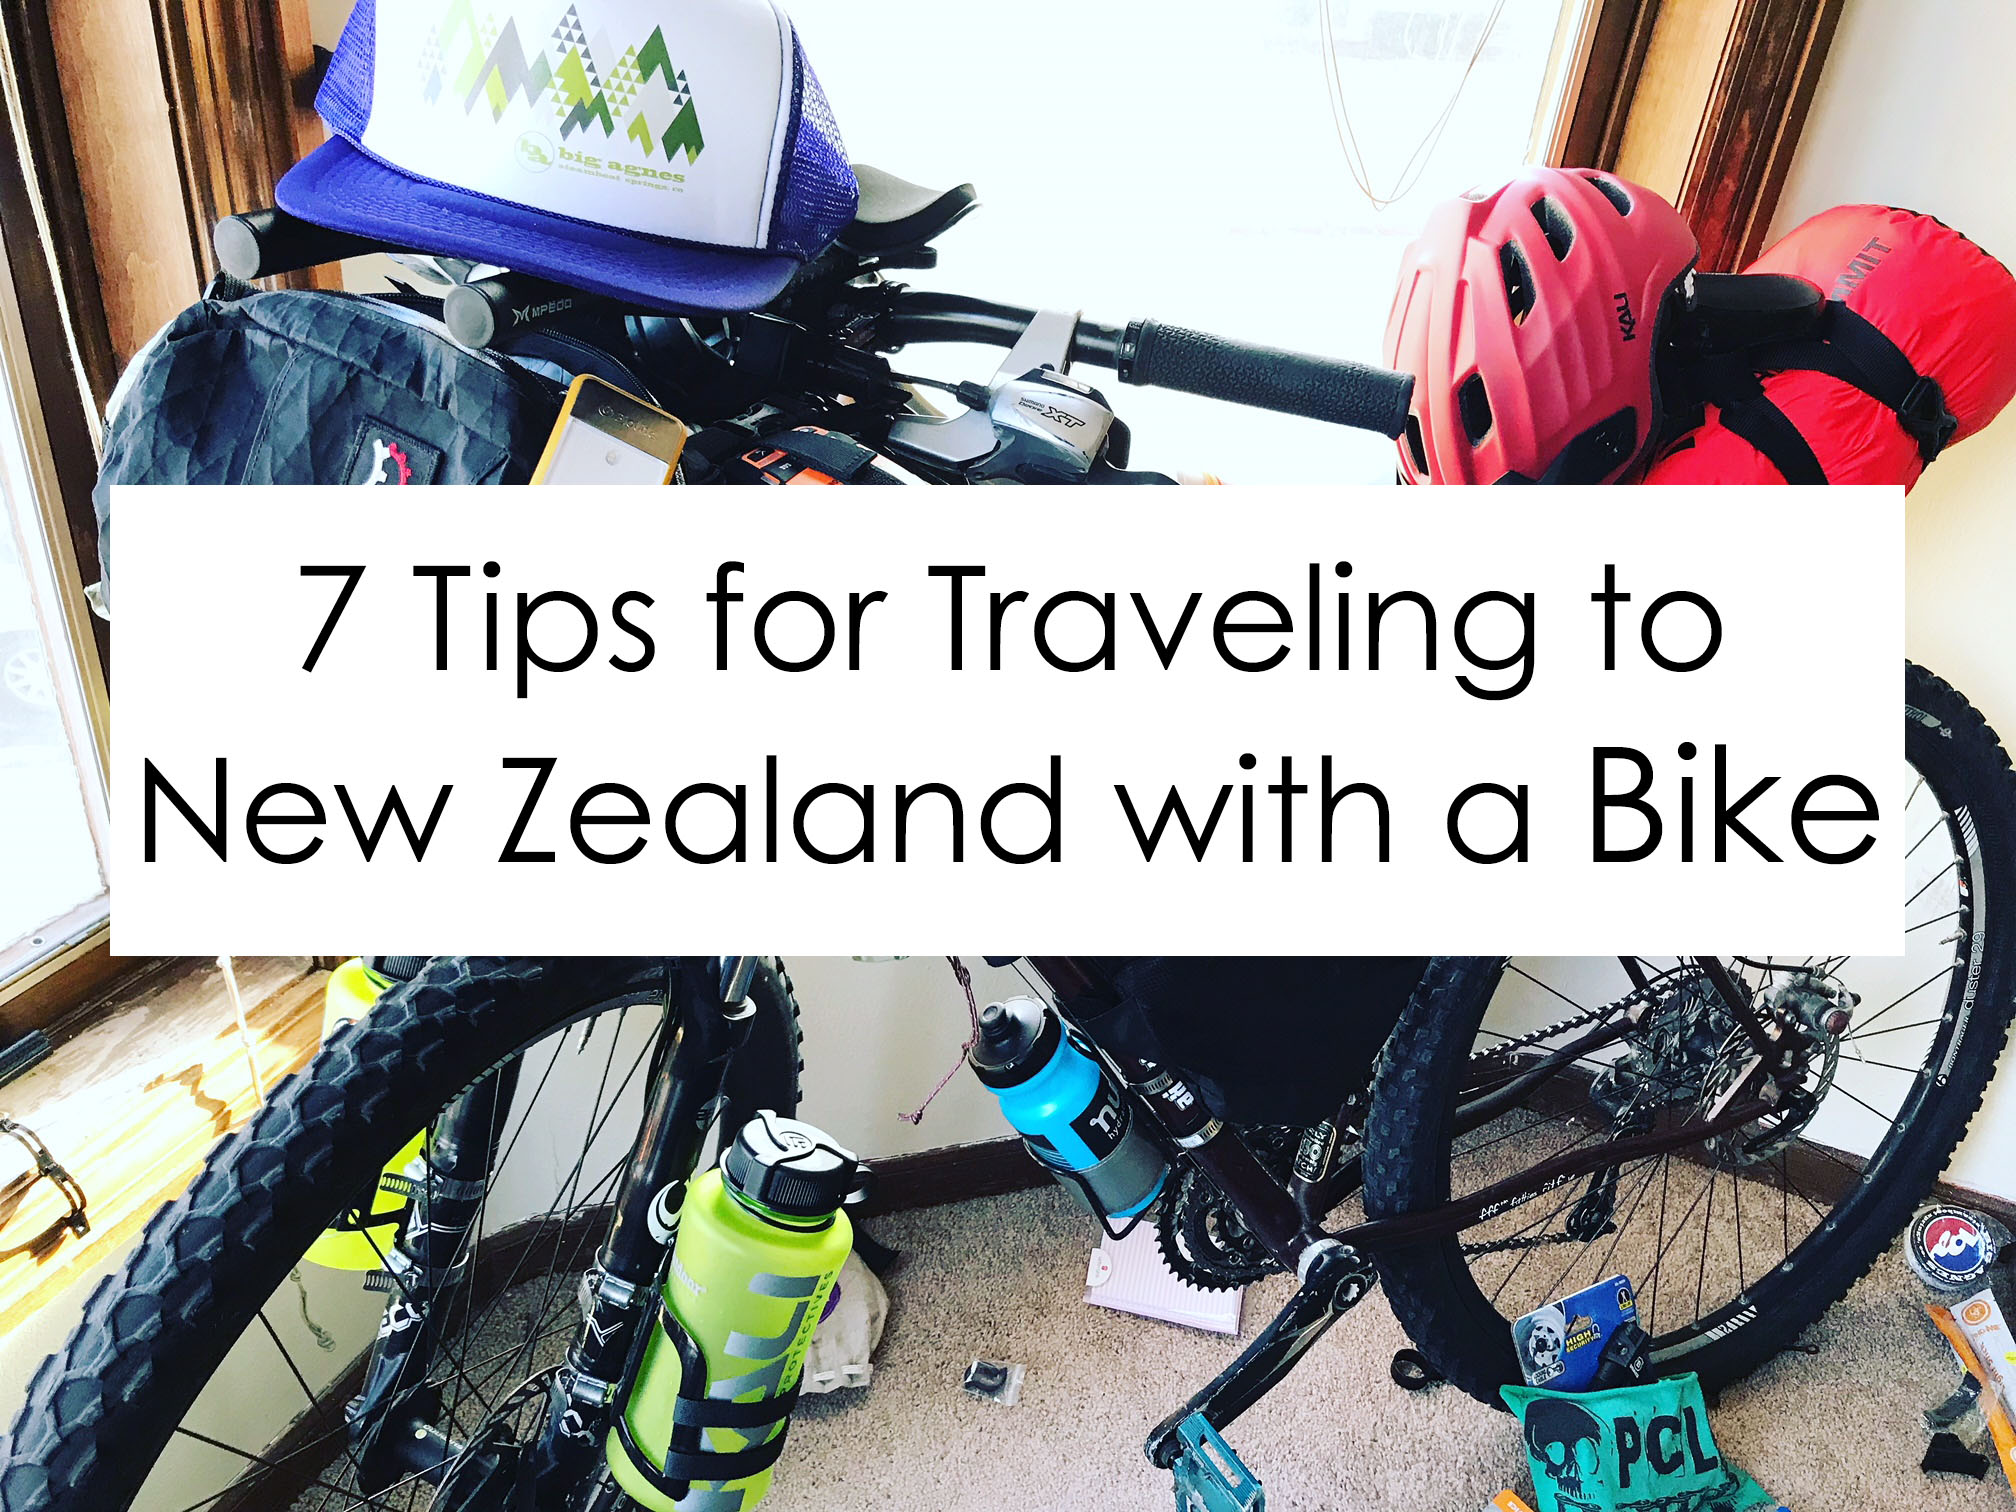 7 tips for traveling to new zealand with a bike